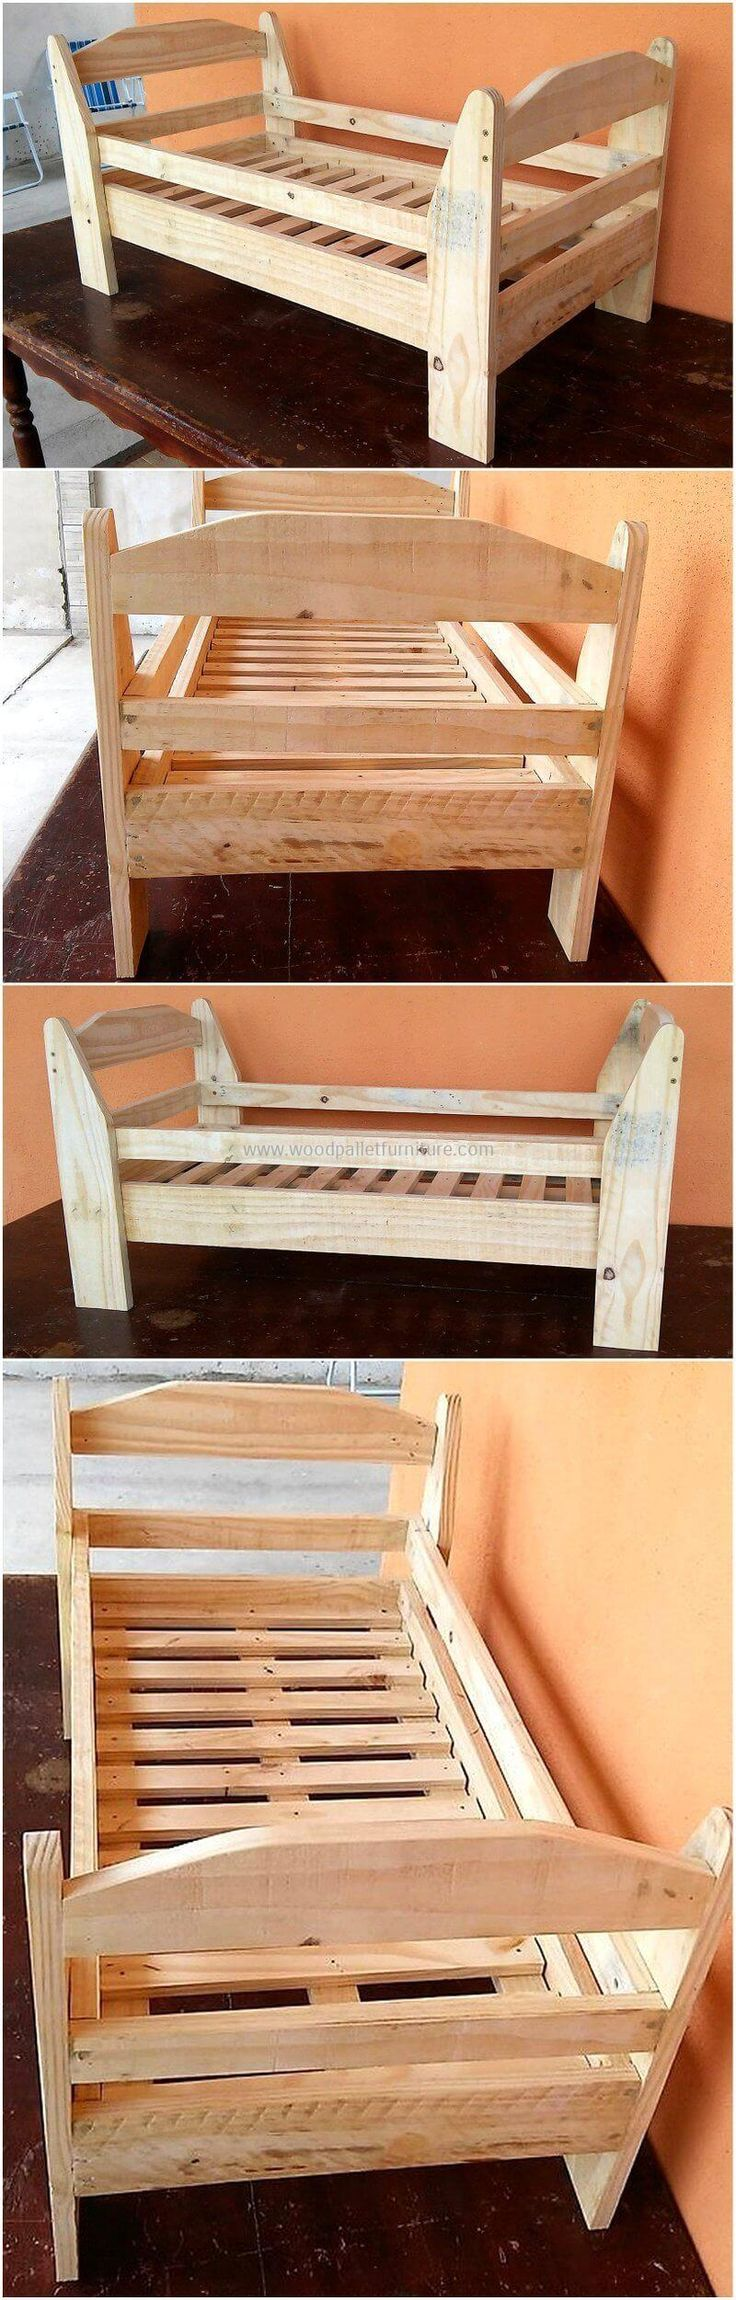 Let's welcome your newborn into this world in a delightful manner by crafting an awesome wooden bed for him. This wooden made bed is entirely crafted with the help of reused wooden pallets that are easily available everywhere. This wooden pallets bed is equally best to construct for your little kids.